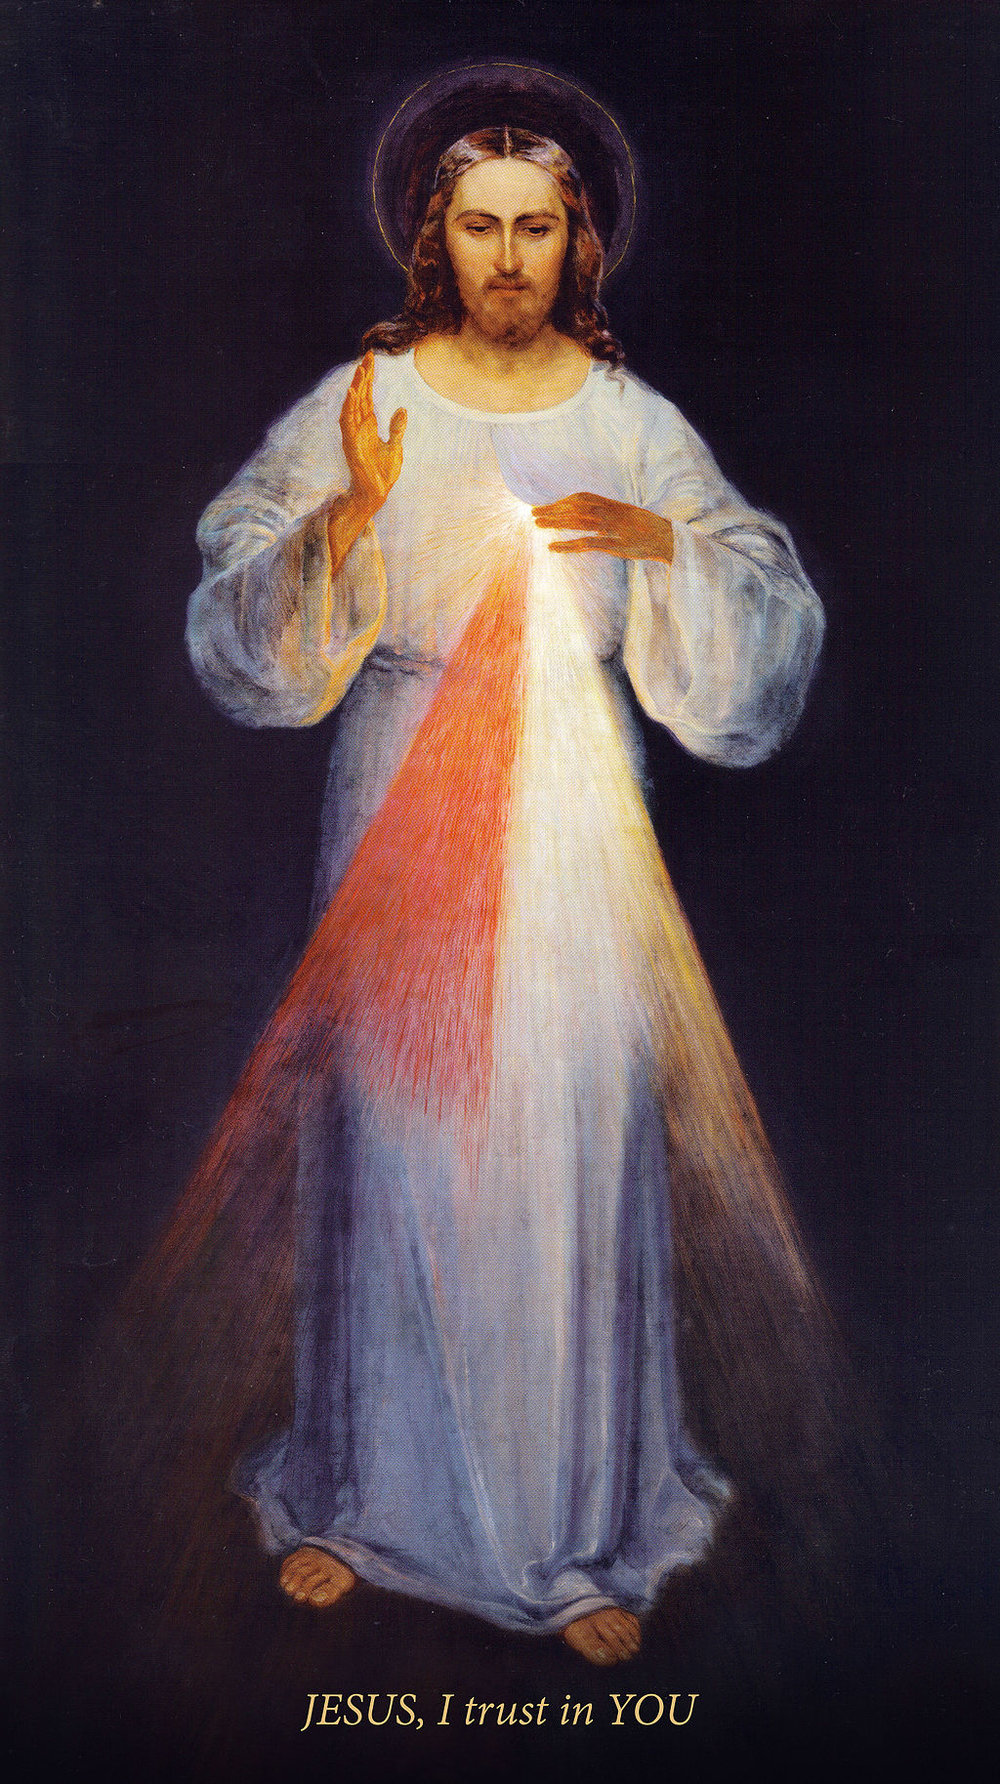 Original painting of the Divine Mercy (by Eugeniusz Kazimirowski in 1934). St. Faustina was not satisfied with the image, but Jesus assured her that it was not the beauty of the painting that would change hearts but the beauty of his grace.